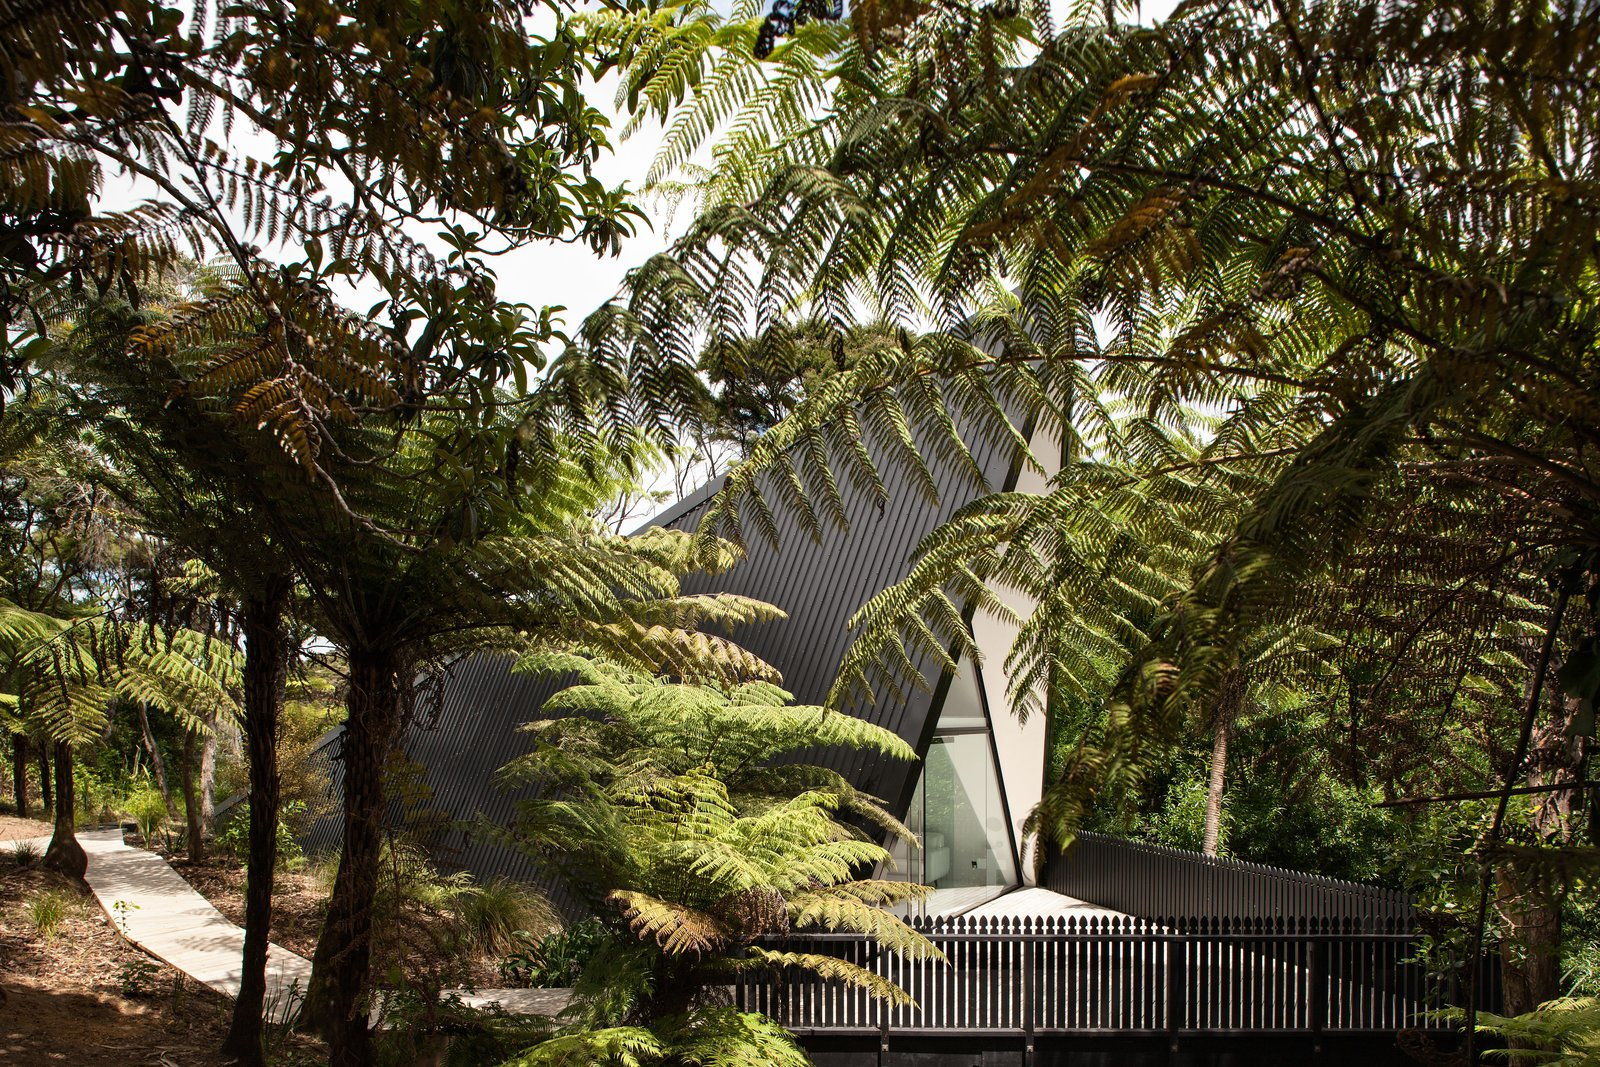 Stay in a Tent-Inspired A-Frame Cabin in the New Zealand Rain Forest